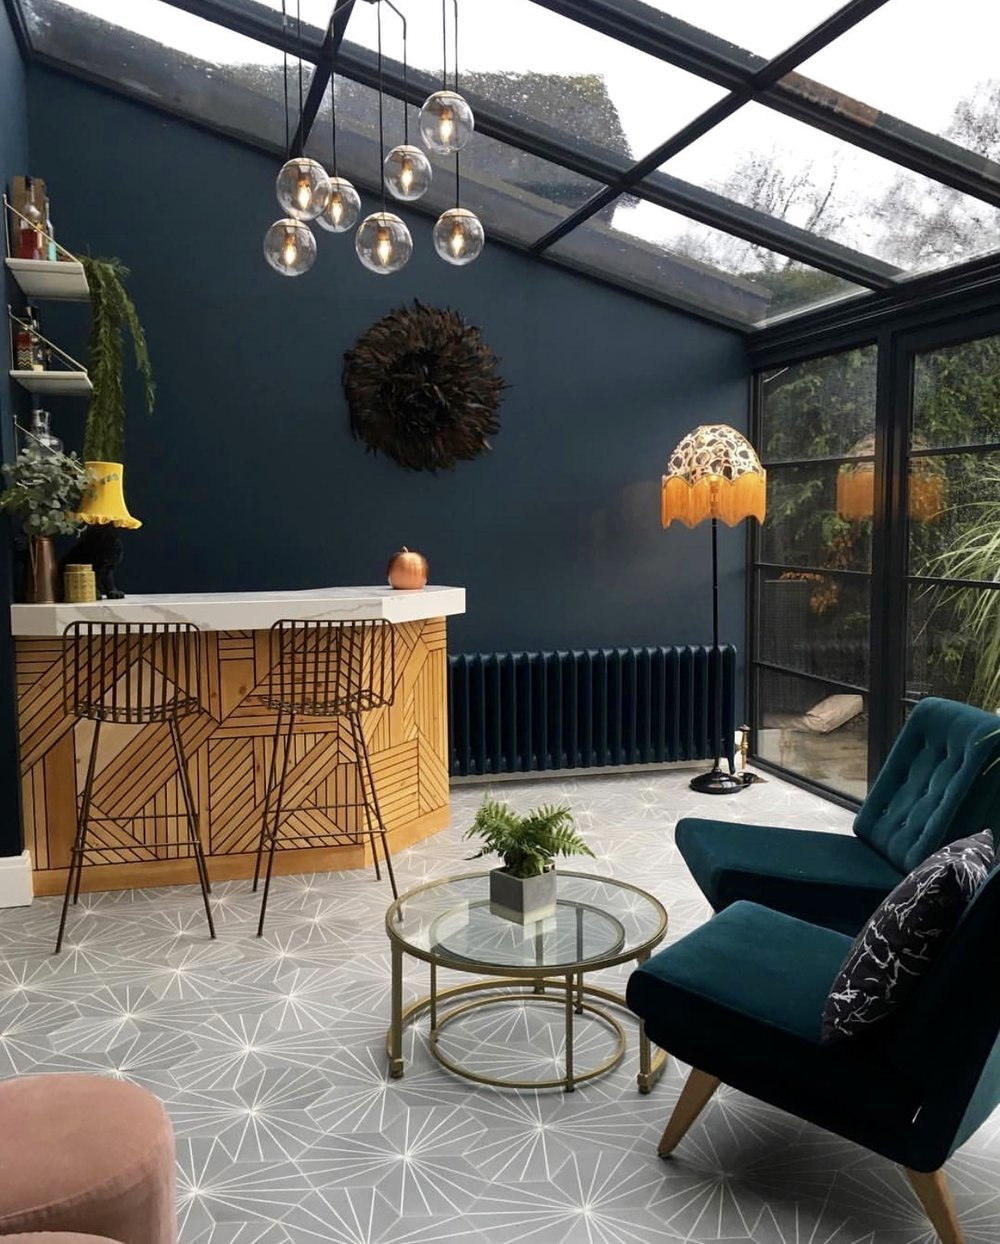 The hex dandelion tiles from   @marrakechdesign   are a real feature of the room......The ceiling light is from   @inscapedesign   ....... Lamp shade by Anna Hayman..... Bar stools & Coffee tables   @Rockettstgeorge.co.uk